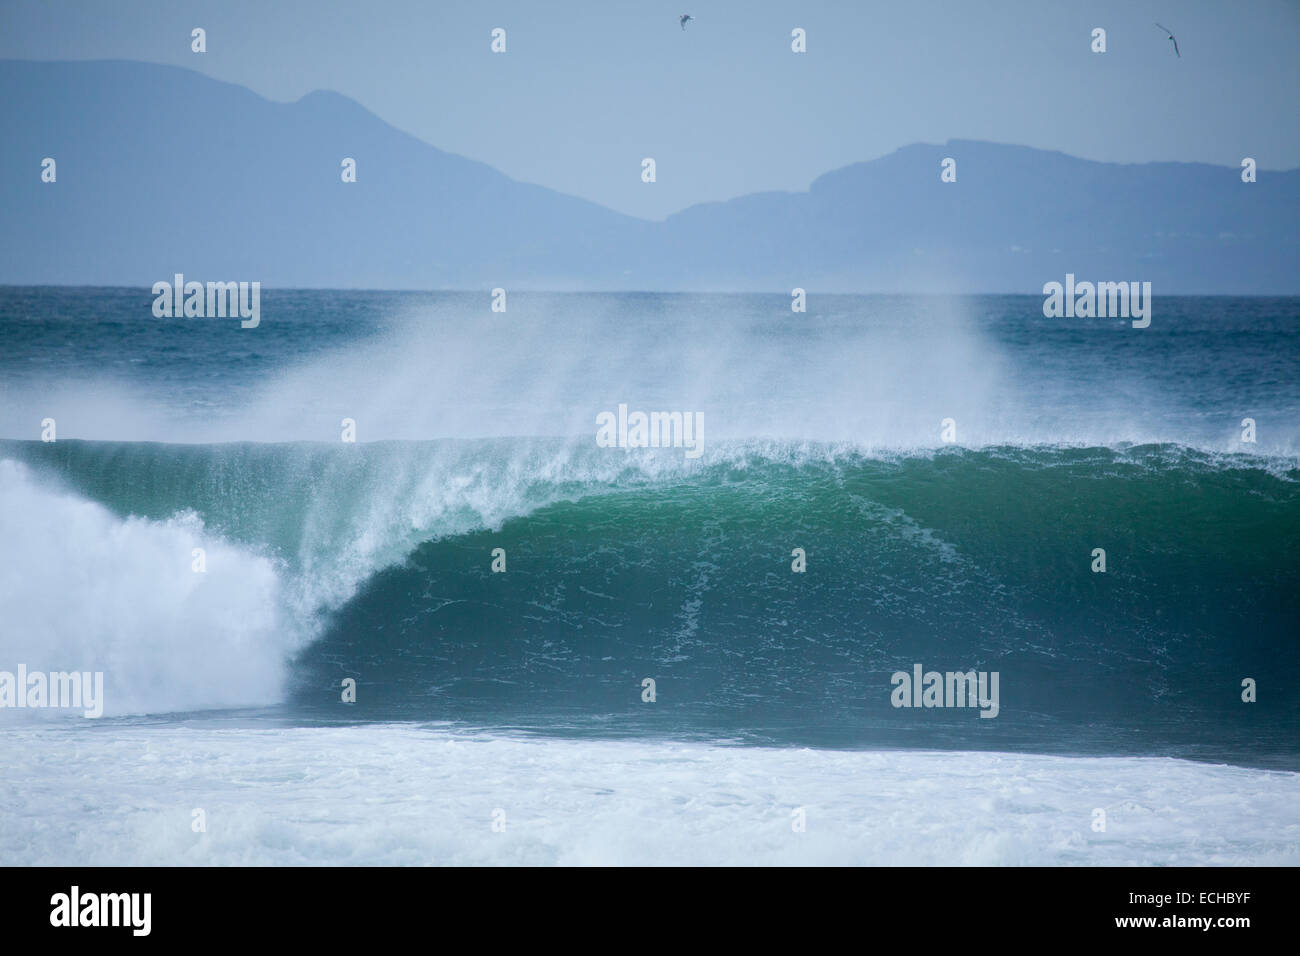 Wave breaking at a surf spot in Bundoran, Donegal Bay, County Donegal, Ireland. - Stock Image